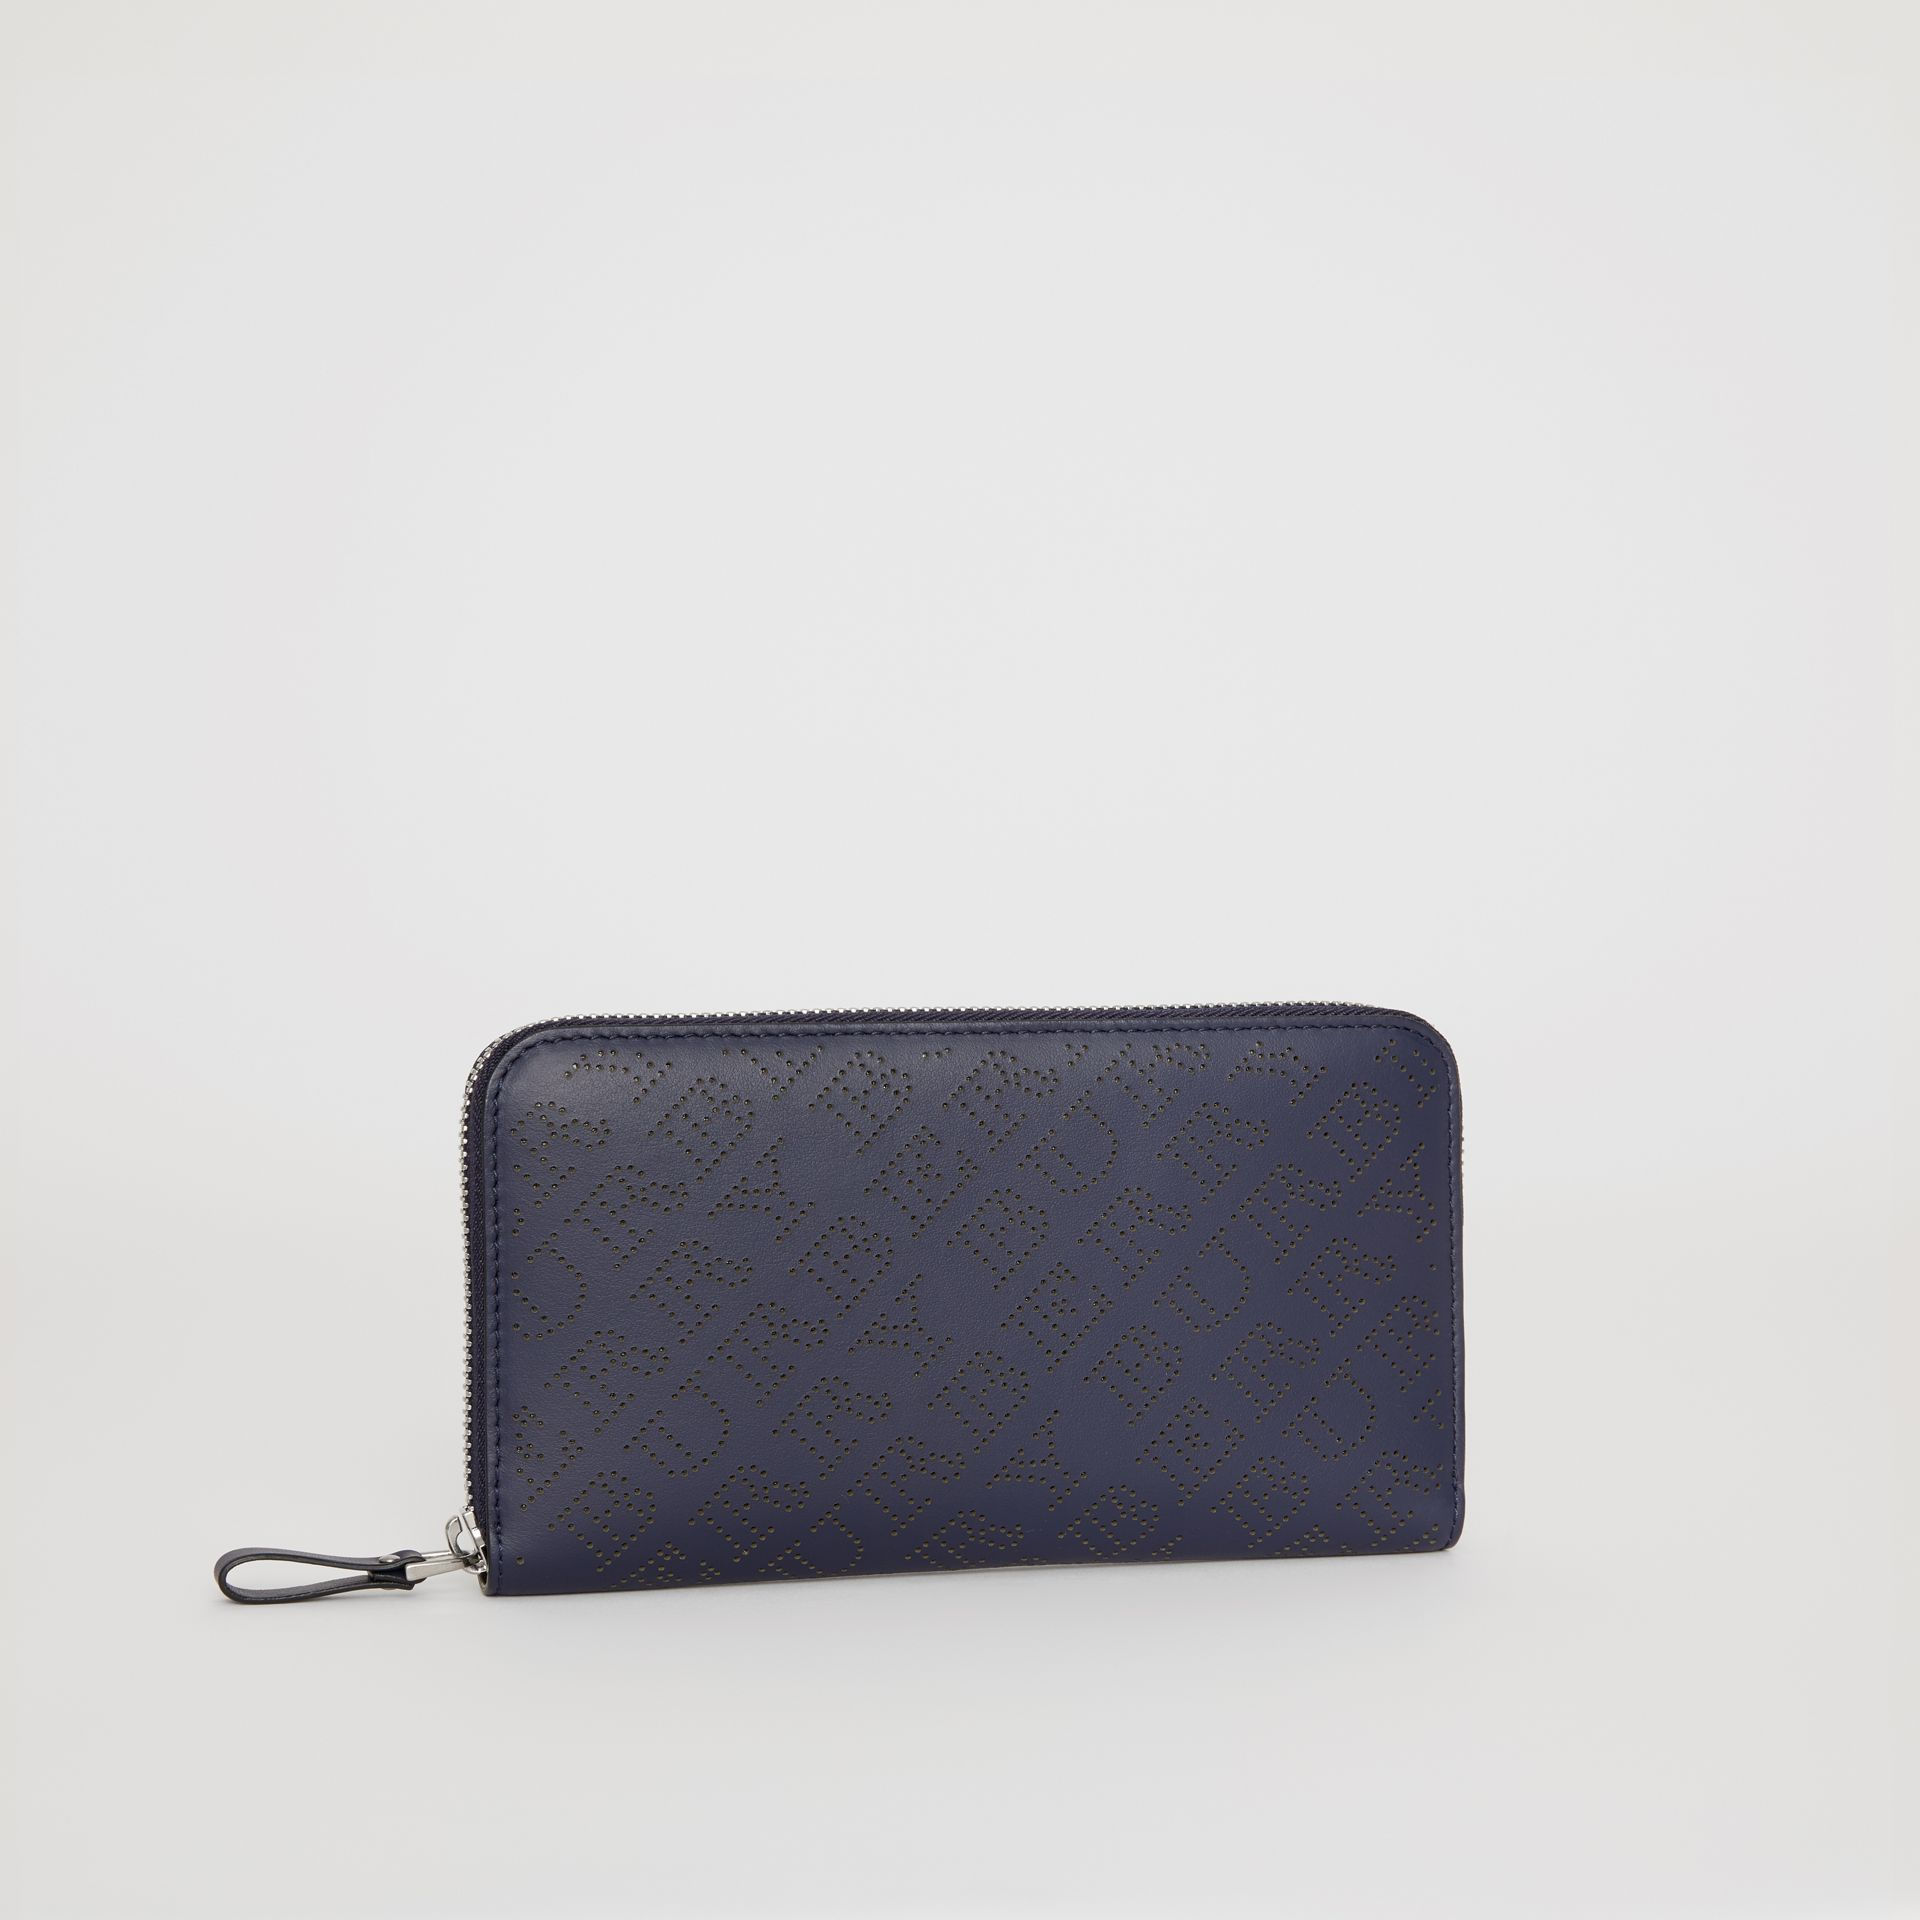 Perforated Leather Ziparound Wallet in Navy - Women | Burberry - gallery image 4